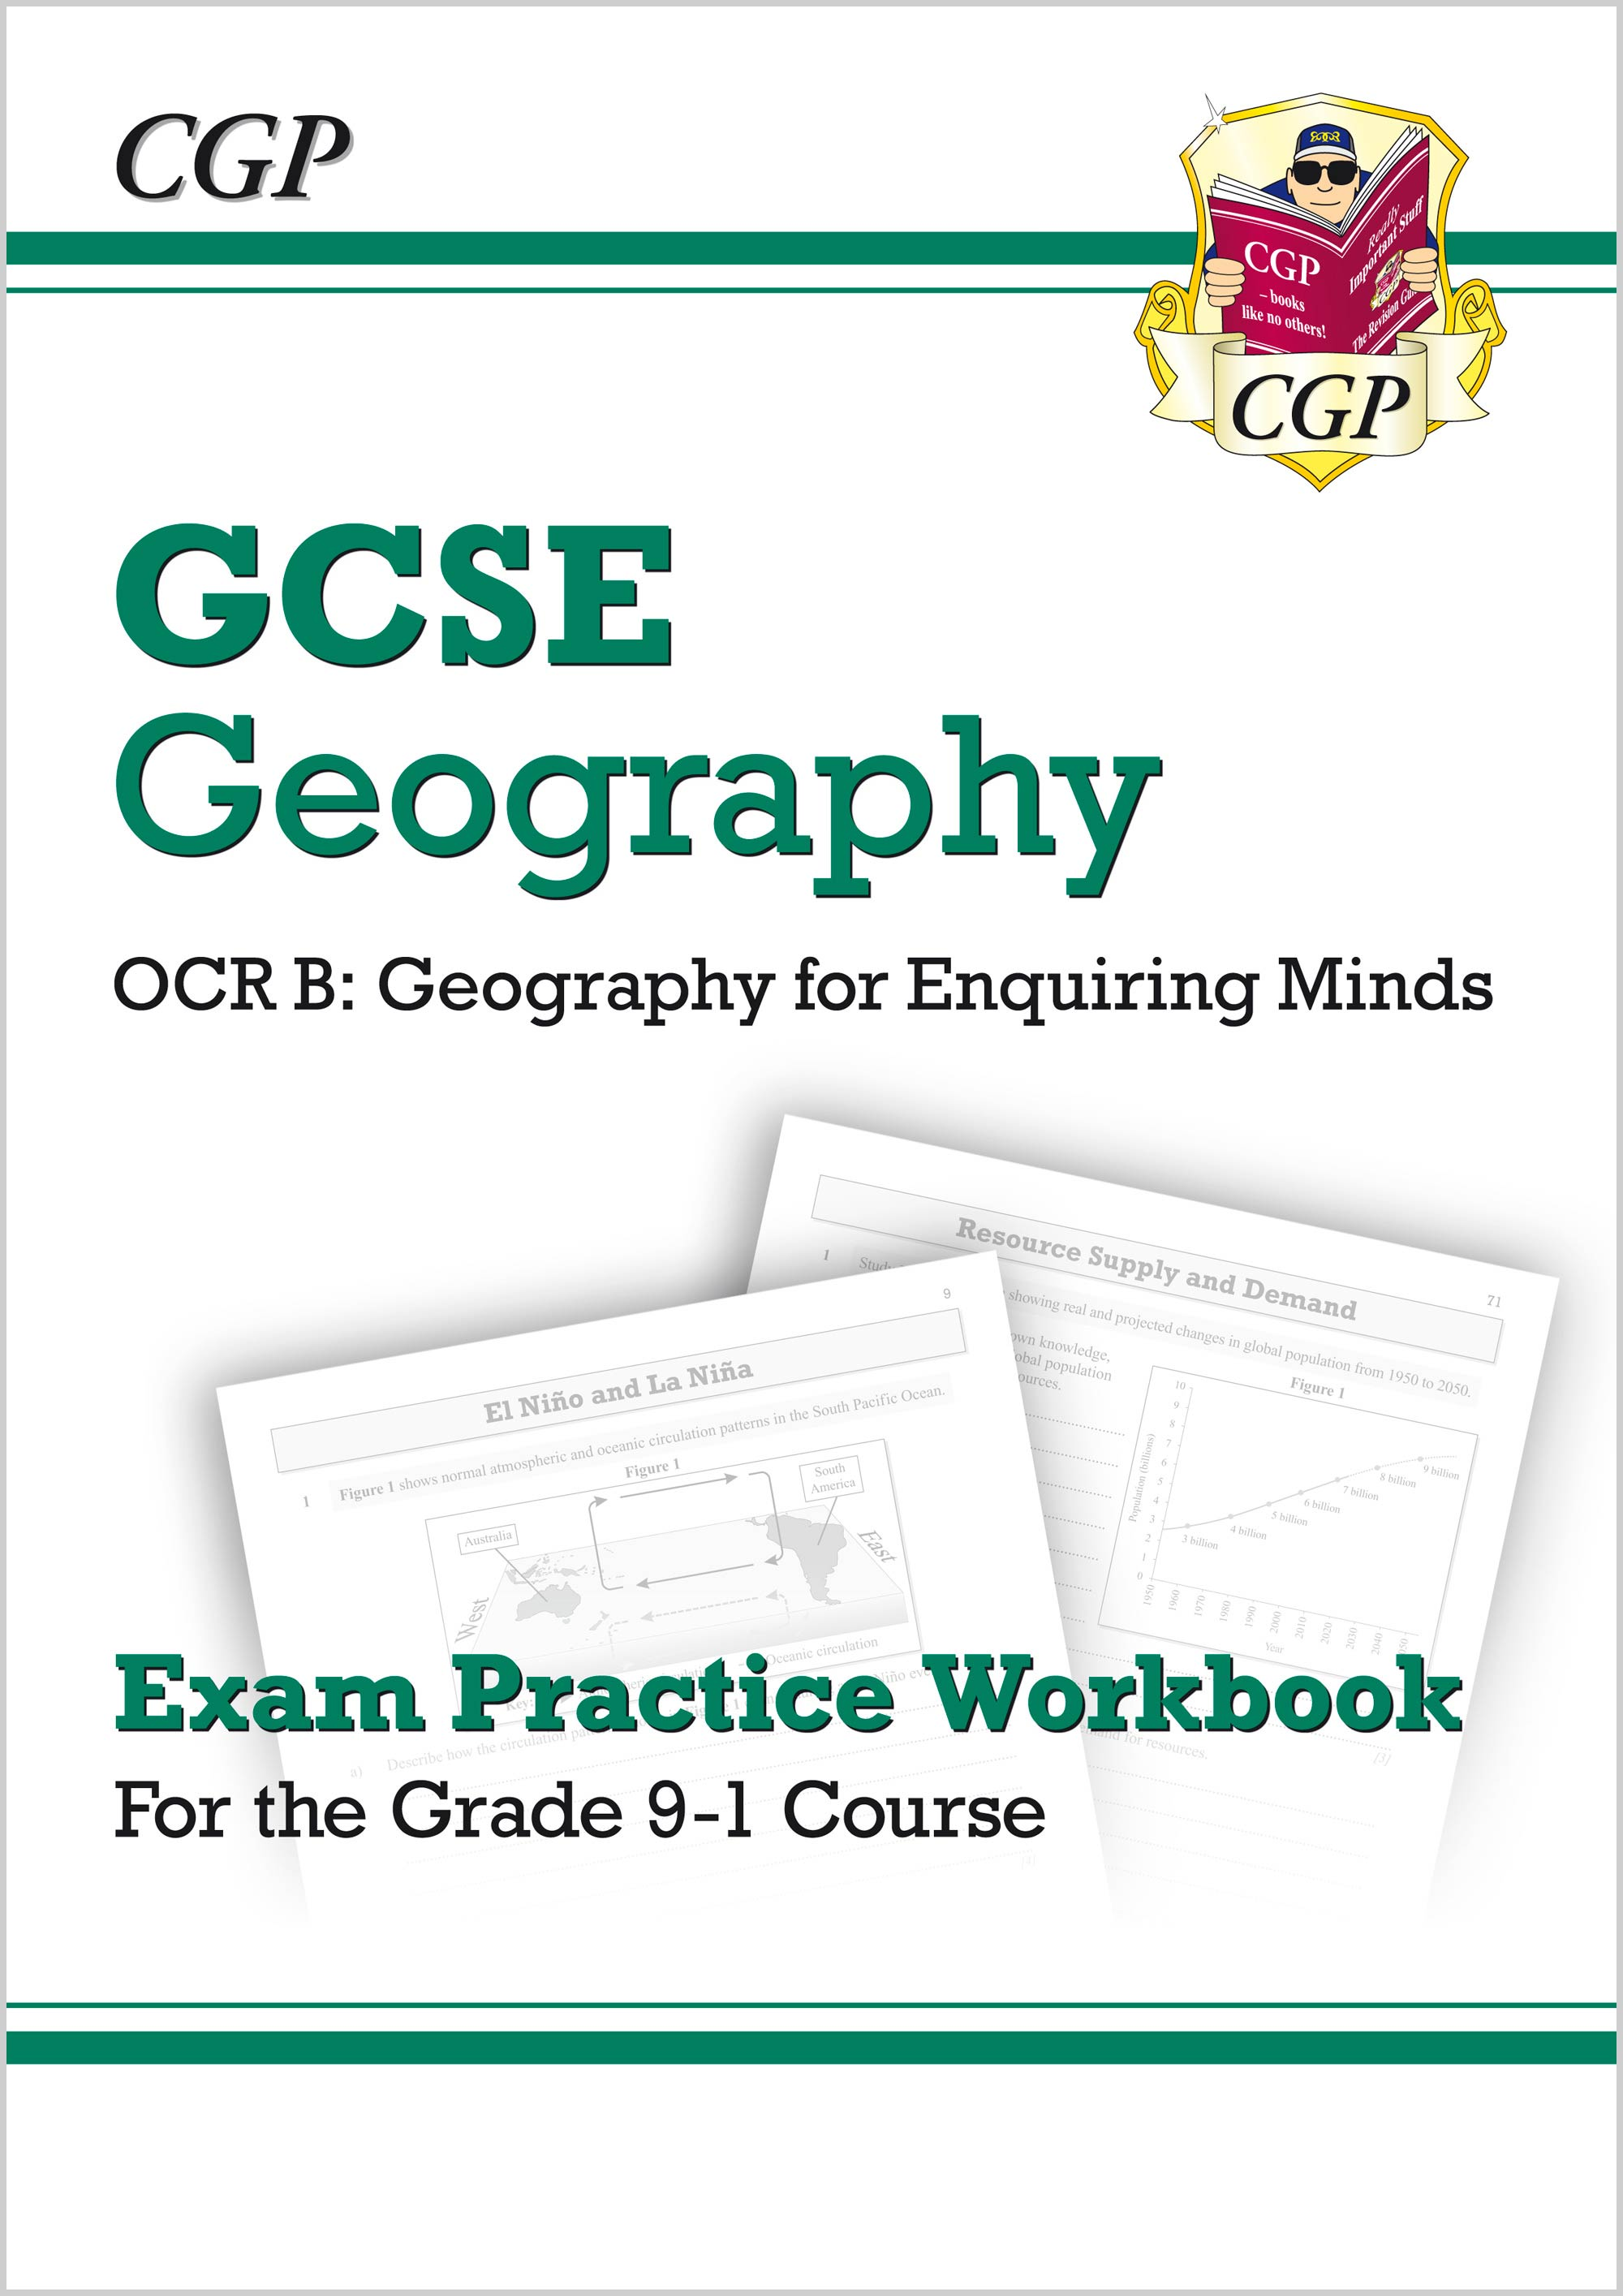 GRQ42 - Grade 9-1 GCSE Geography OCR B: Geography for Enquiring Minds - Exam Practice Workbook